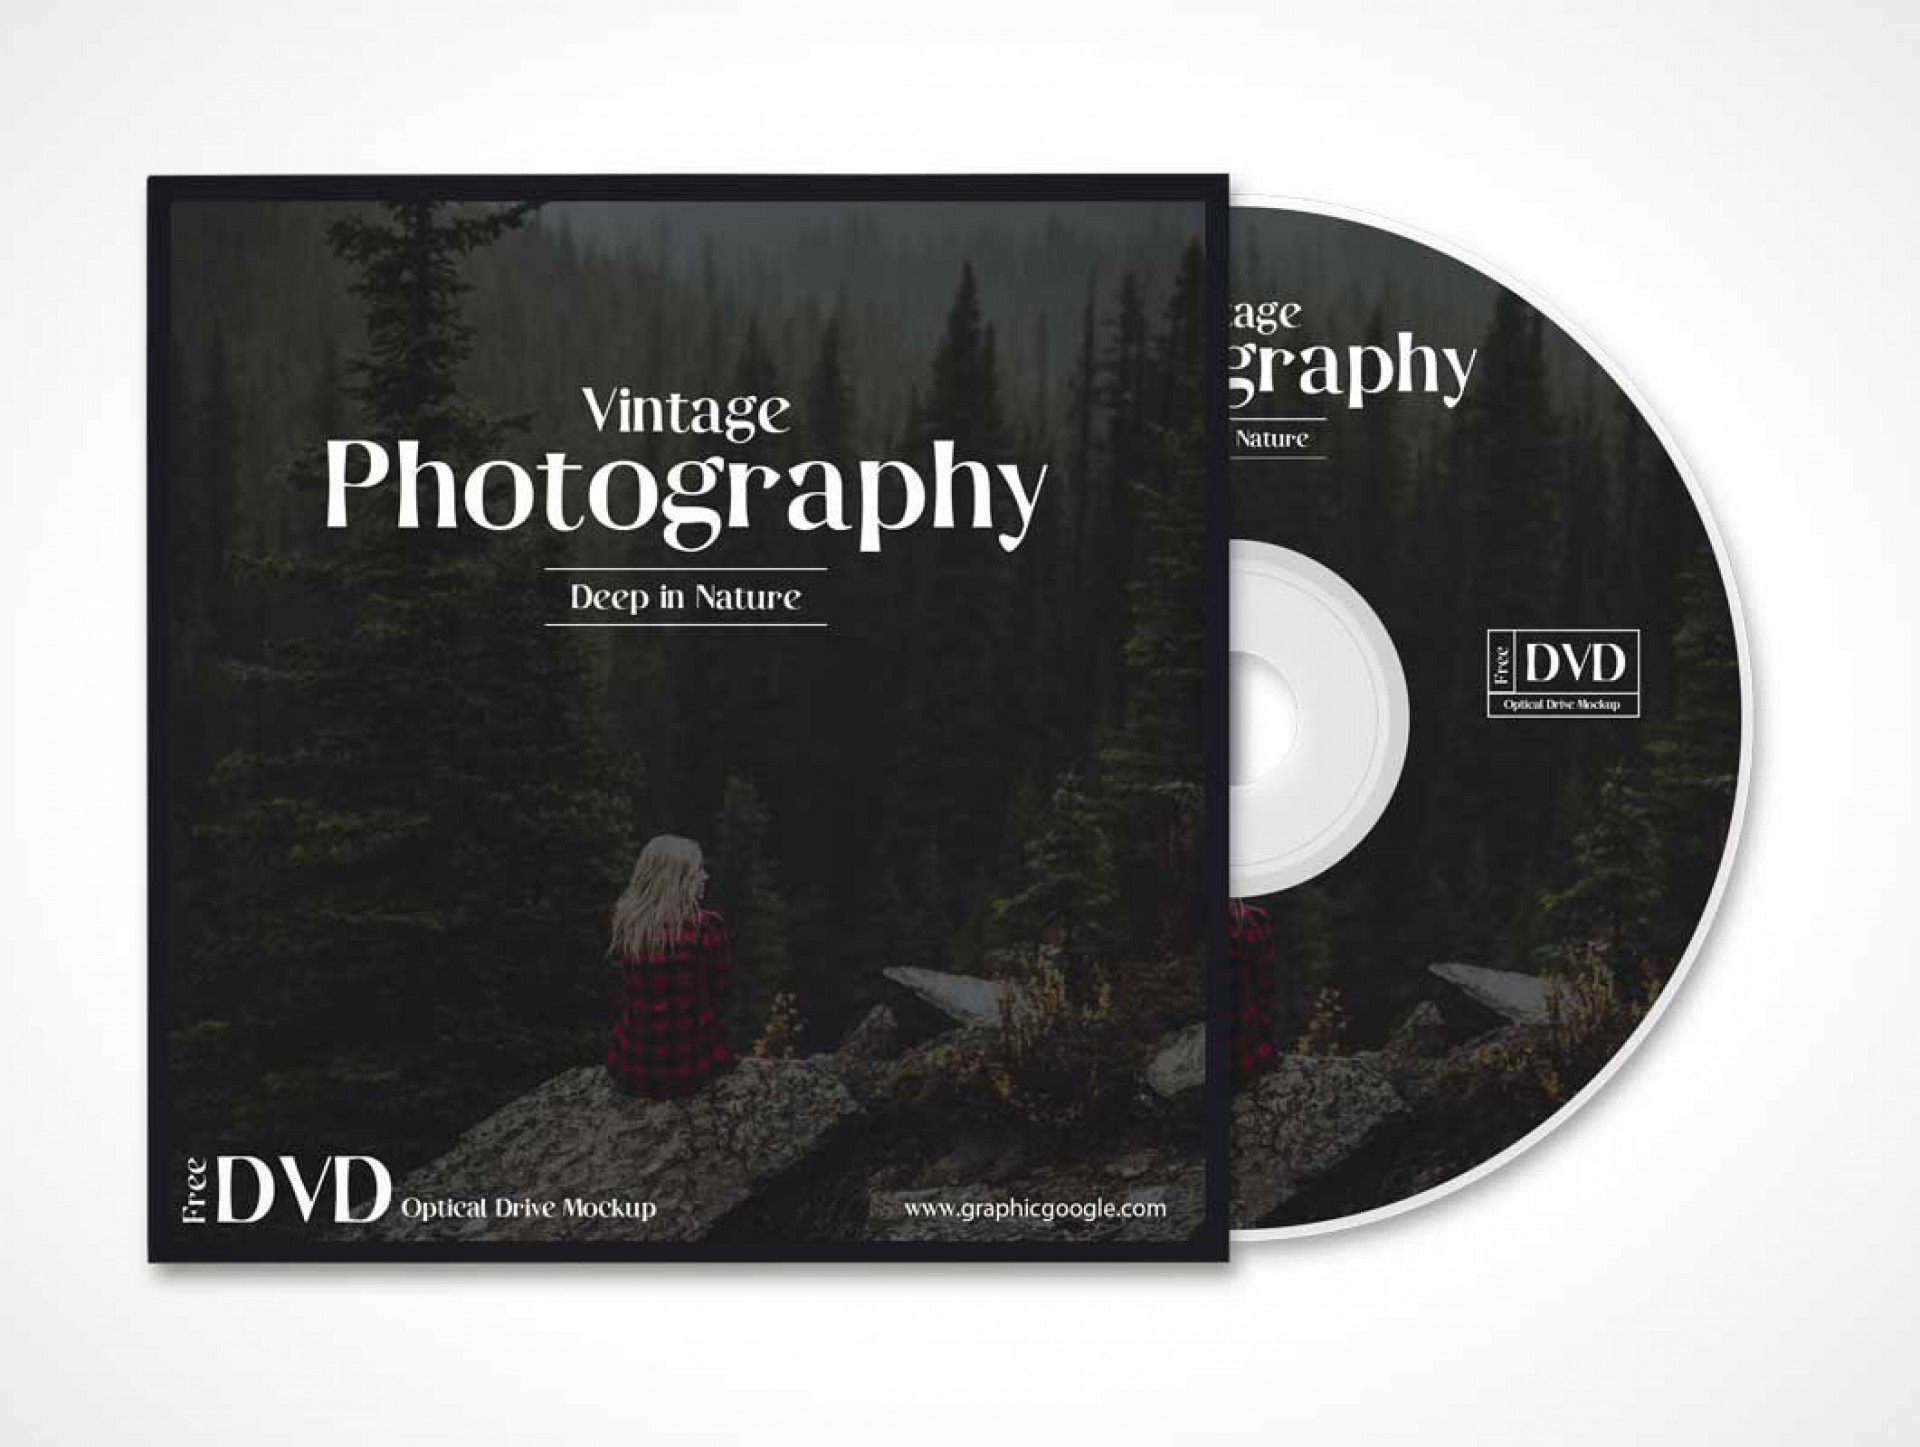 009 Impressive Music Cd Cover Design Template Free Download Example 1920